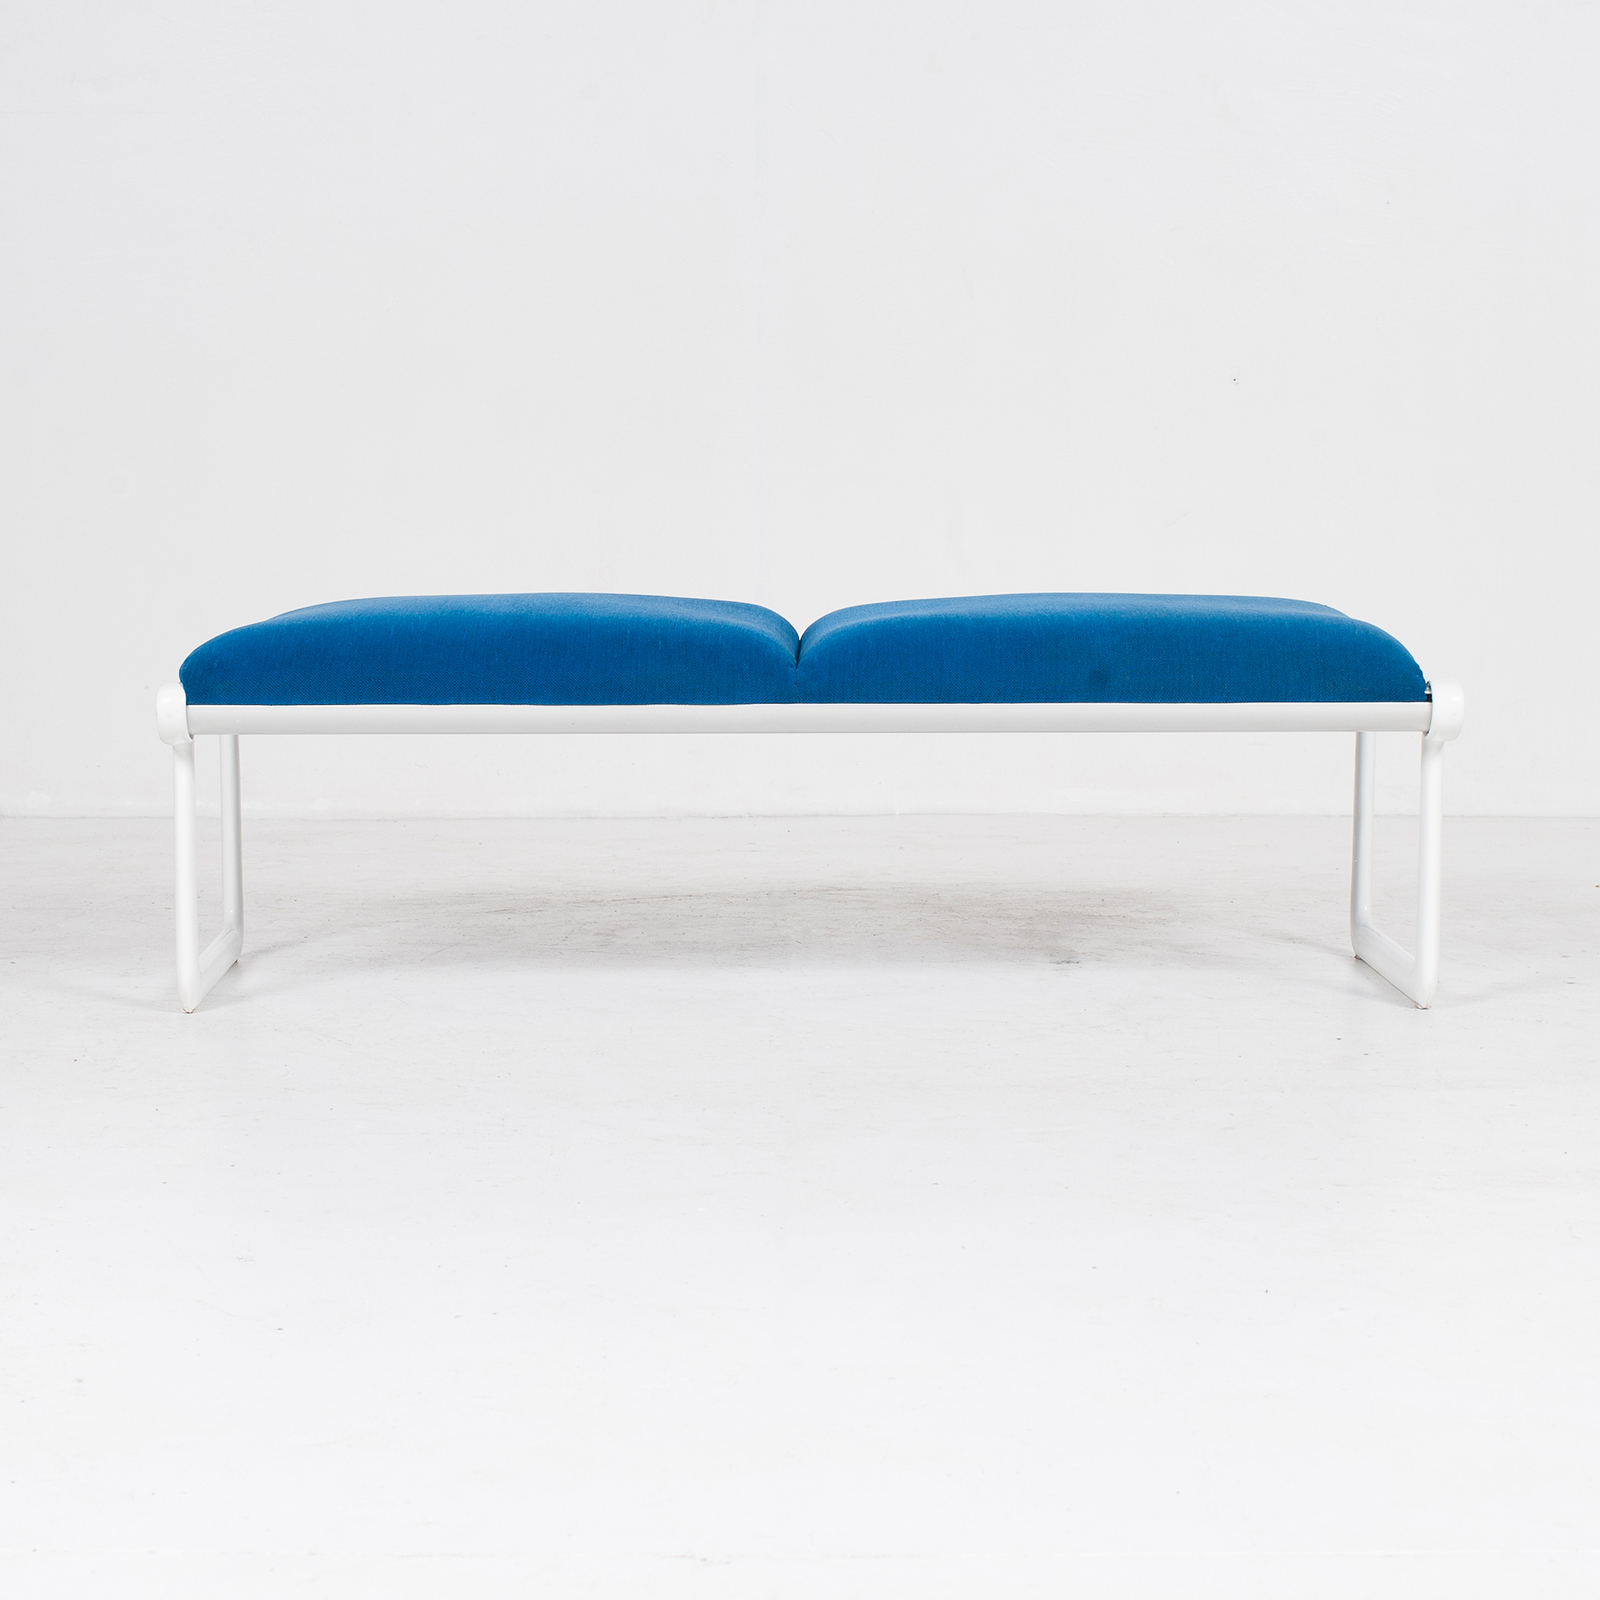 Bench By Bruce Hannah And Andrew Morrison For Knoll With Blue Upholstery, 1960s, United States 0